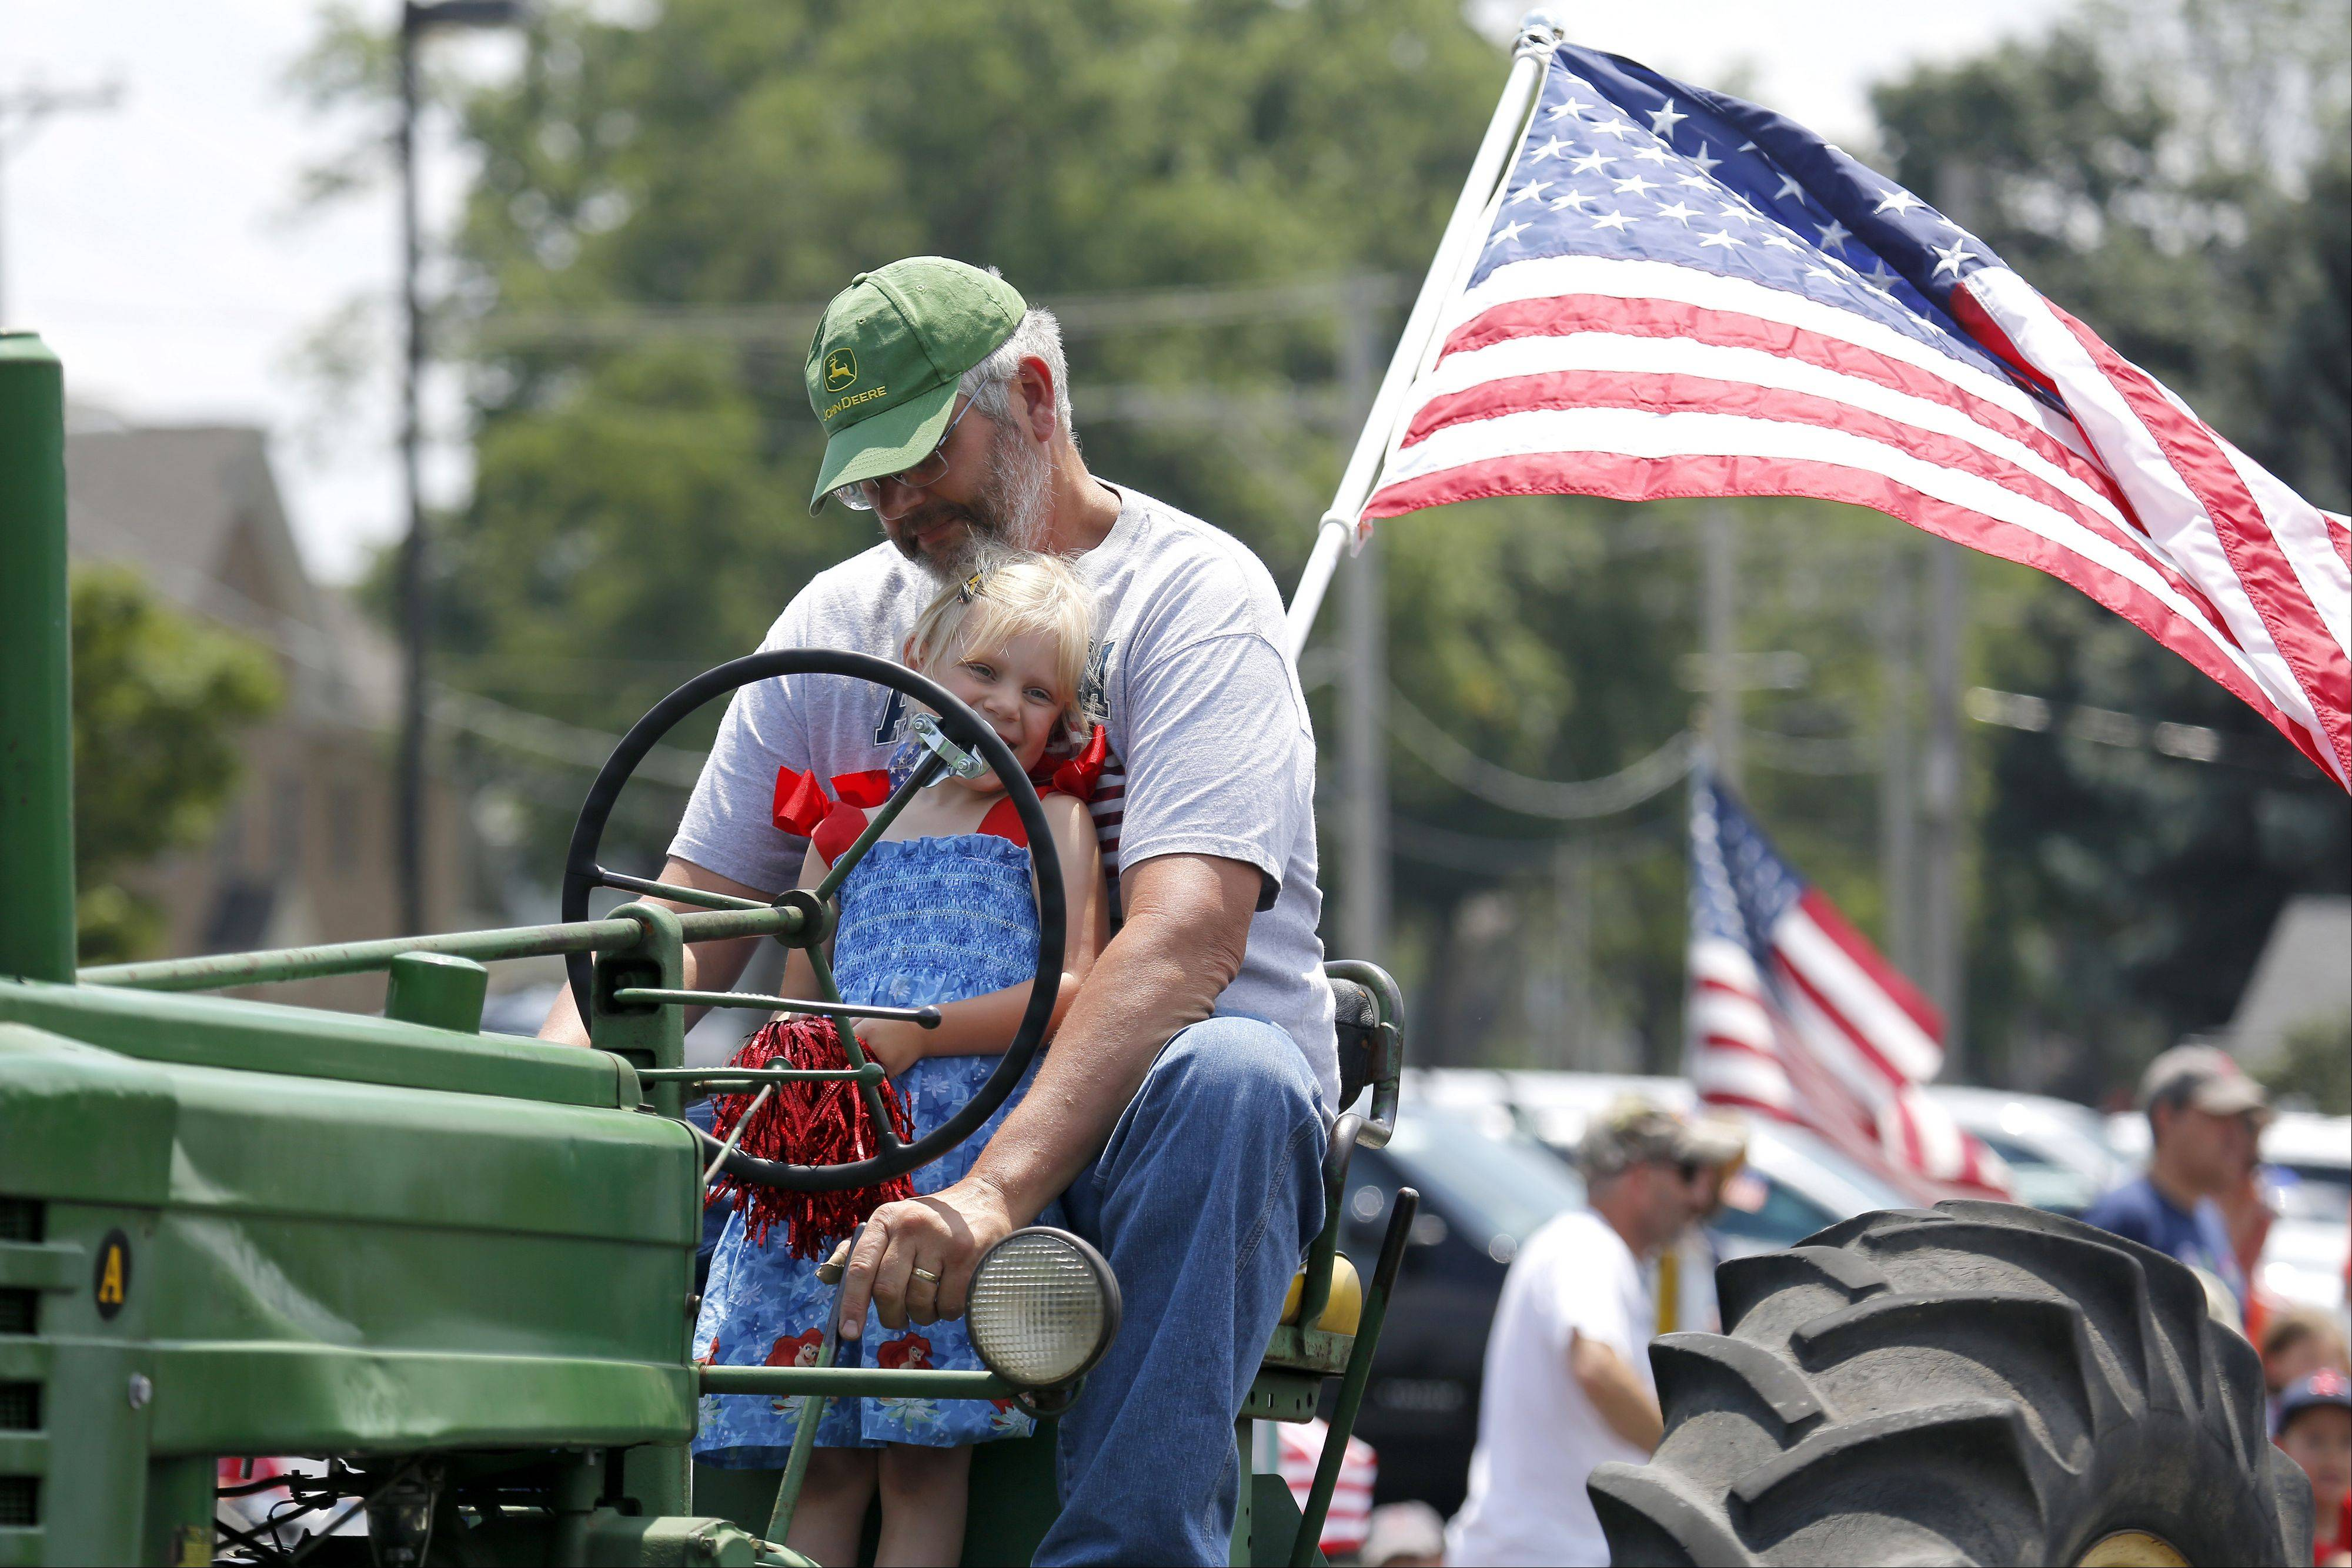 Five-year-old Bethany Volkening Helps her grandfather John Volkening out on his tractor during the Sugar Grove Fourth of July Parade Thursday. Both are from Sugar Grove.